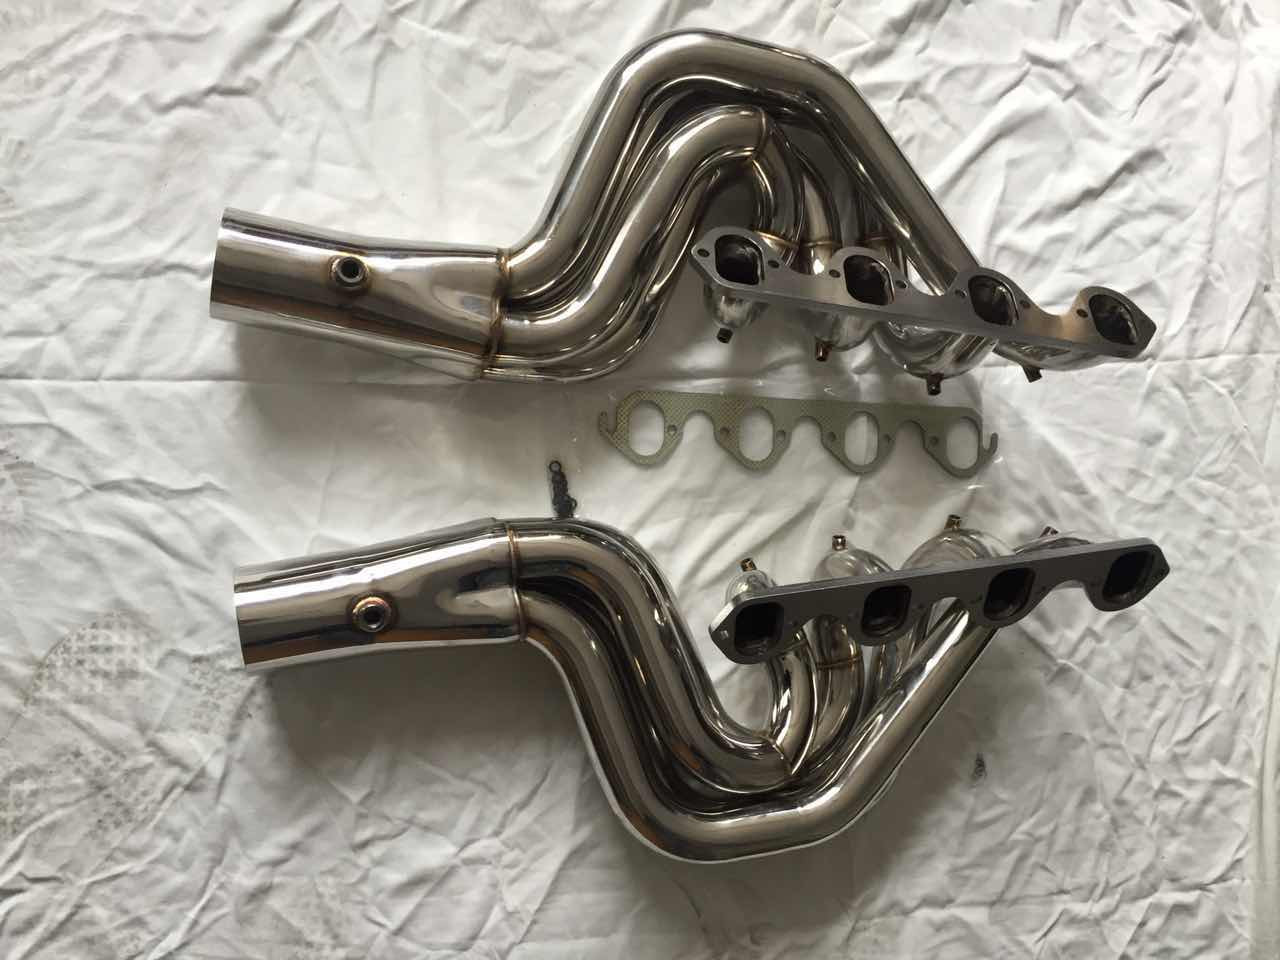 Big Block Ford Thru Transom Exhaust 460 Jet Race Boat Water Injected Headers